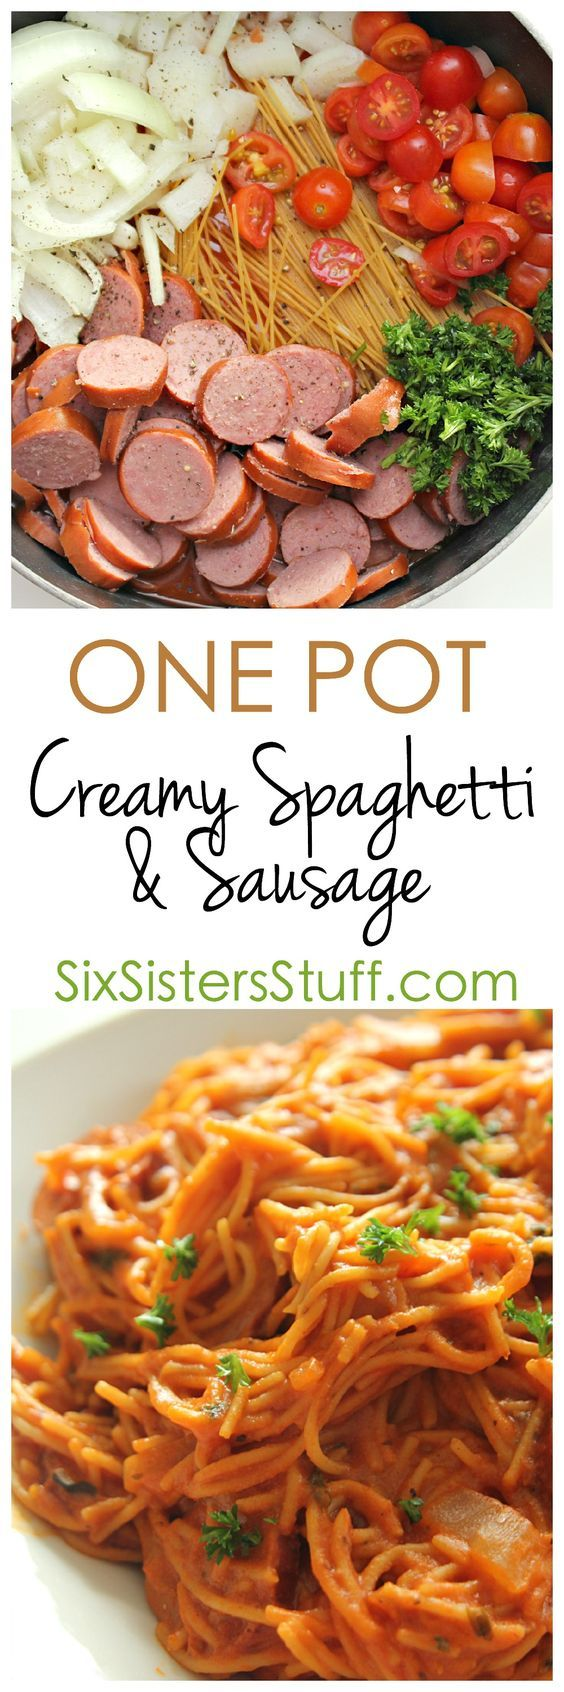 One Pot Creamy Spaghetti and Sausage